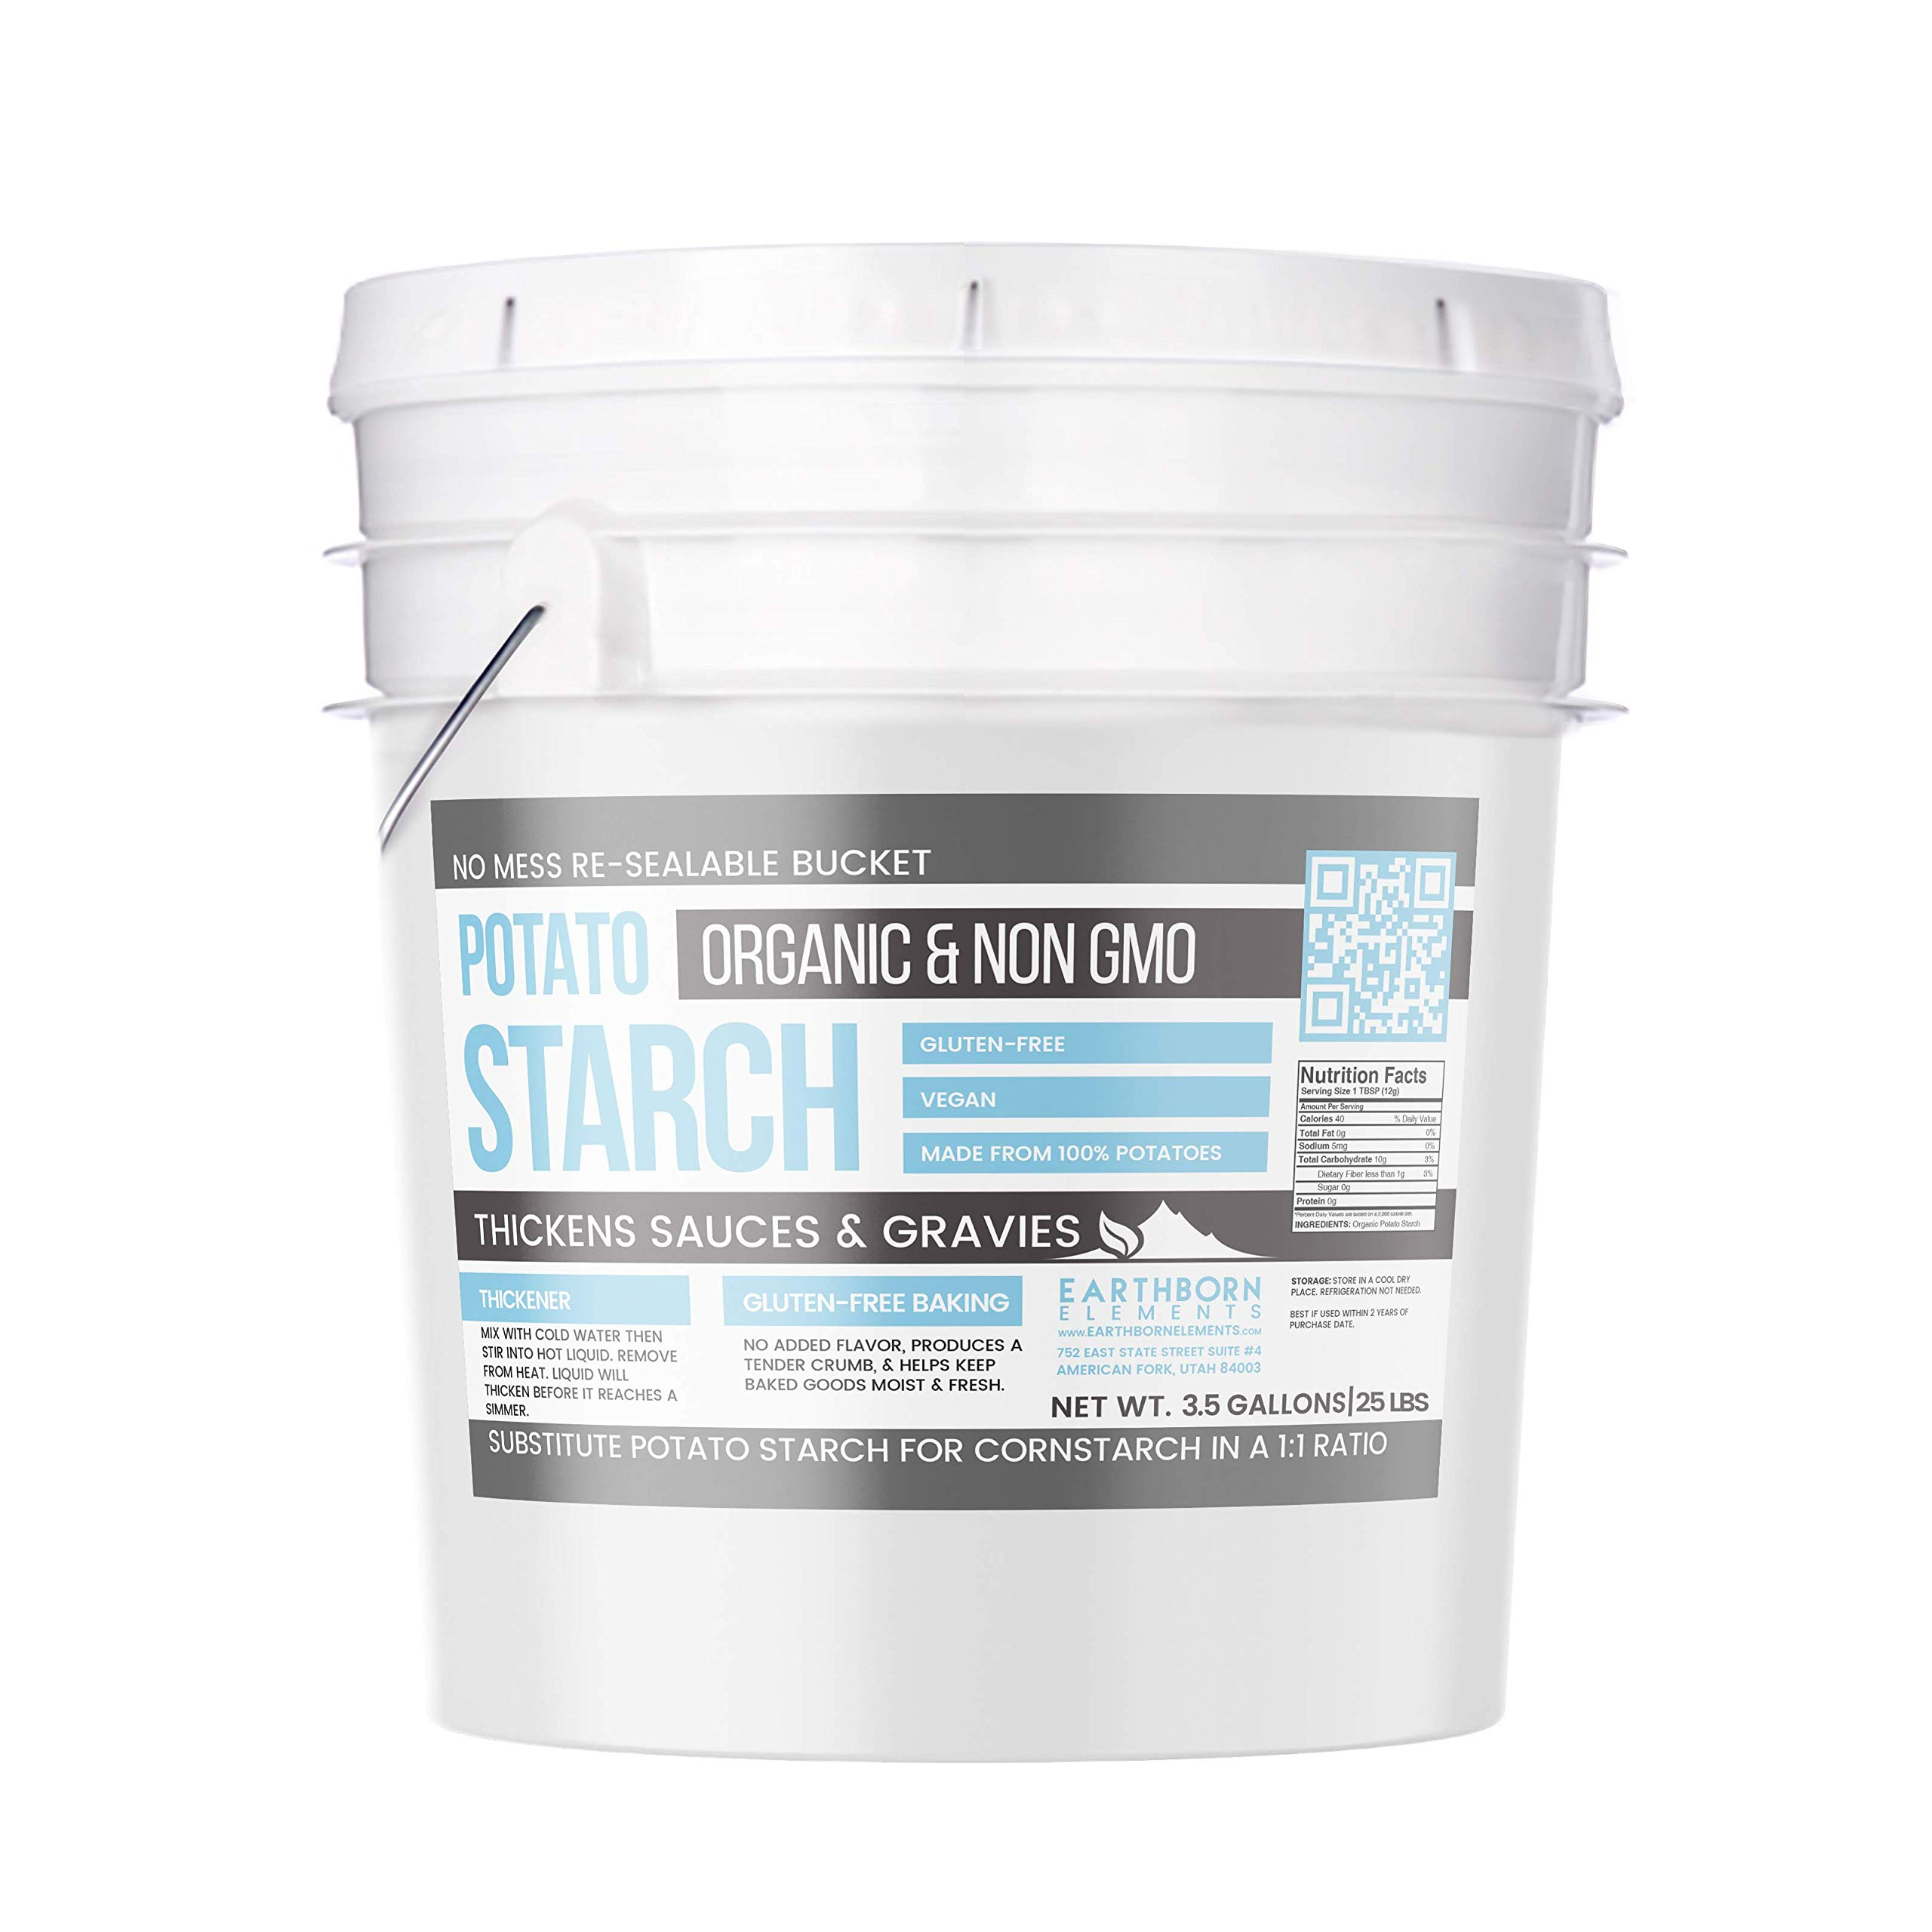 Potato Starch (3.5 gallon (25 lbs.)) by Earthborn Elements, Resealable bucket, Gluten-Free, NON-GMO, All-Natural, Thickener For Sauces, Soup, & Gravy, No Added Preservatives Or Artificial Ingredients